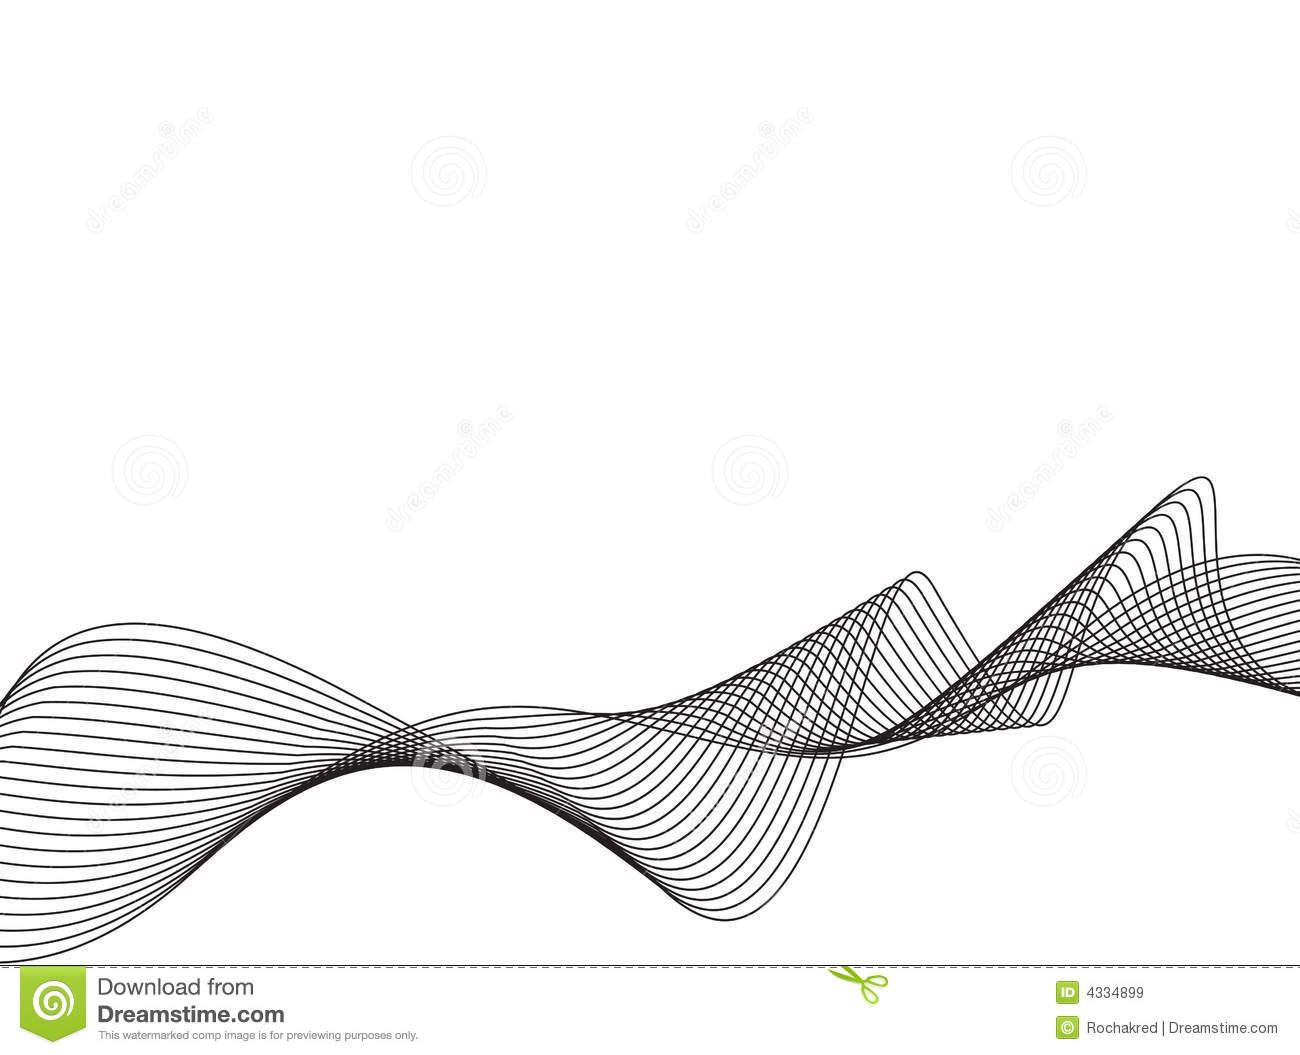 Line Art Media Design : Vector line art waves g s